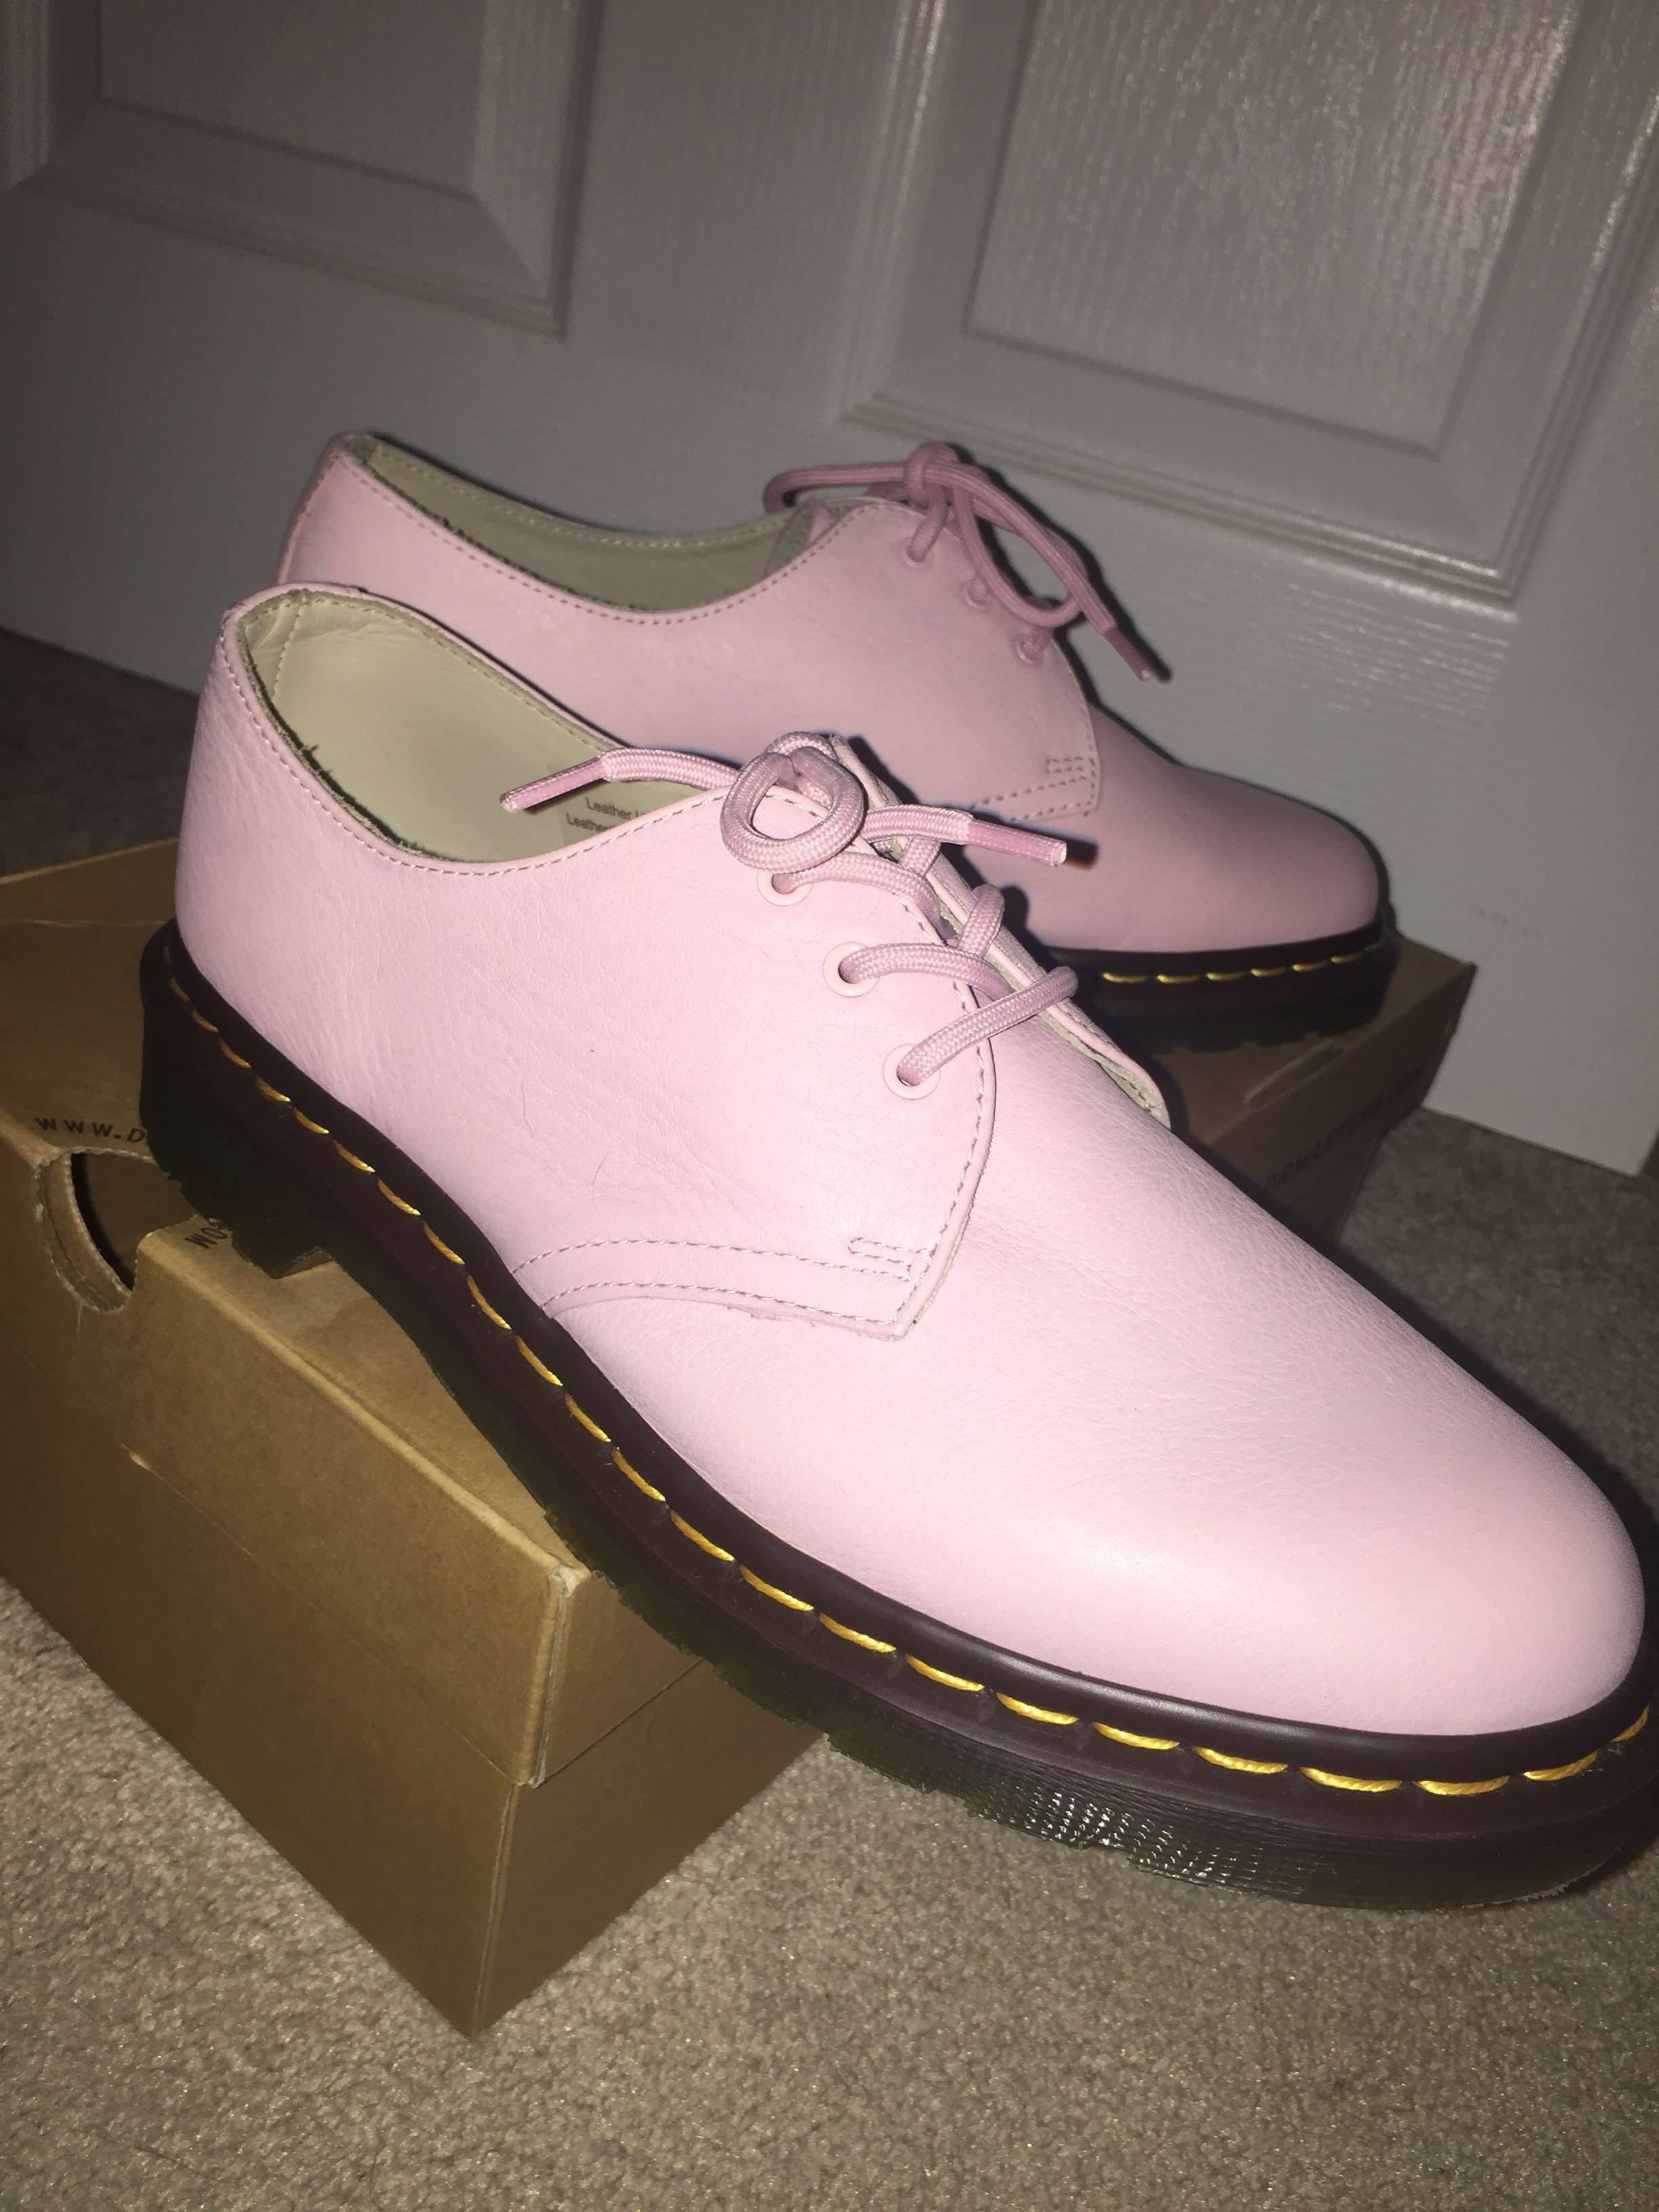 Pastel Pink 3 Eye Limited Edition Dr Martens